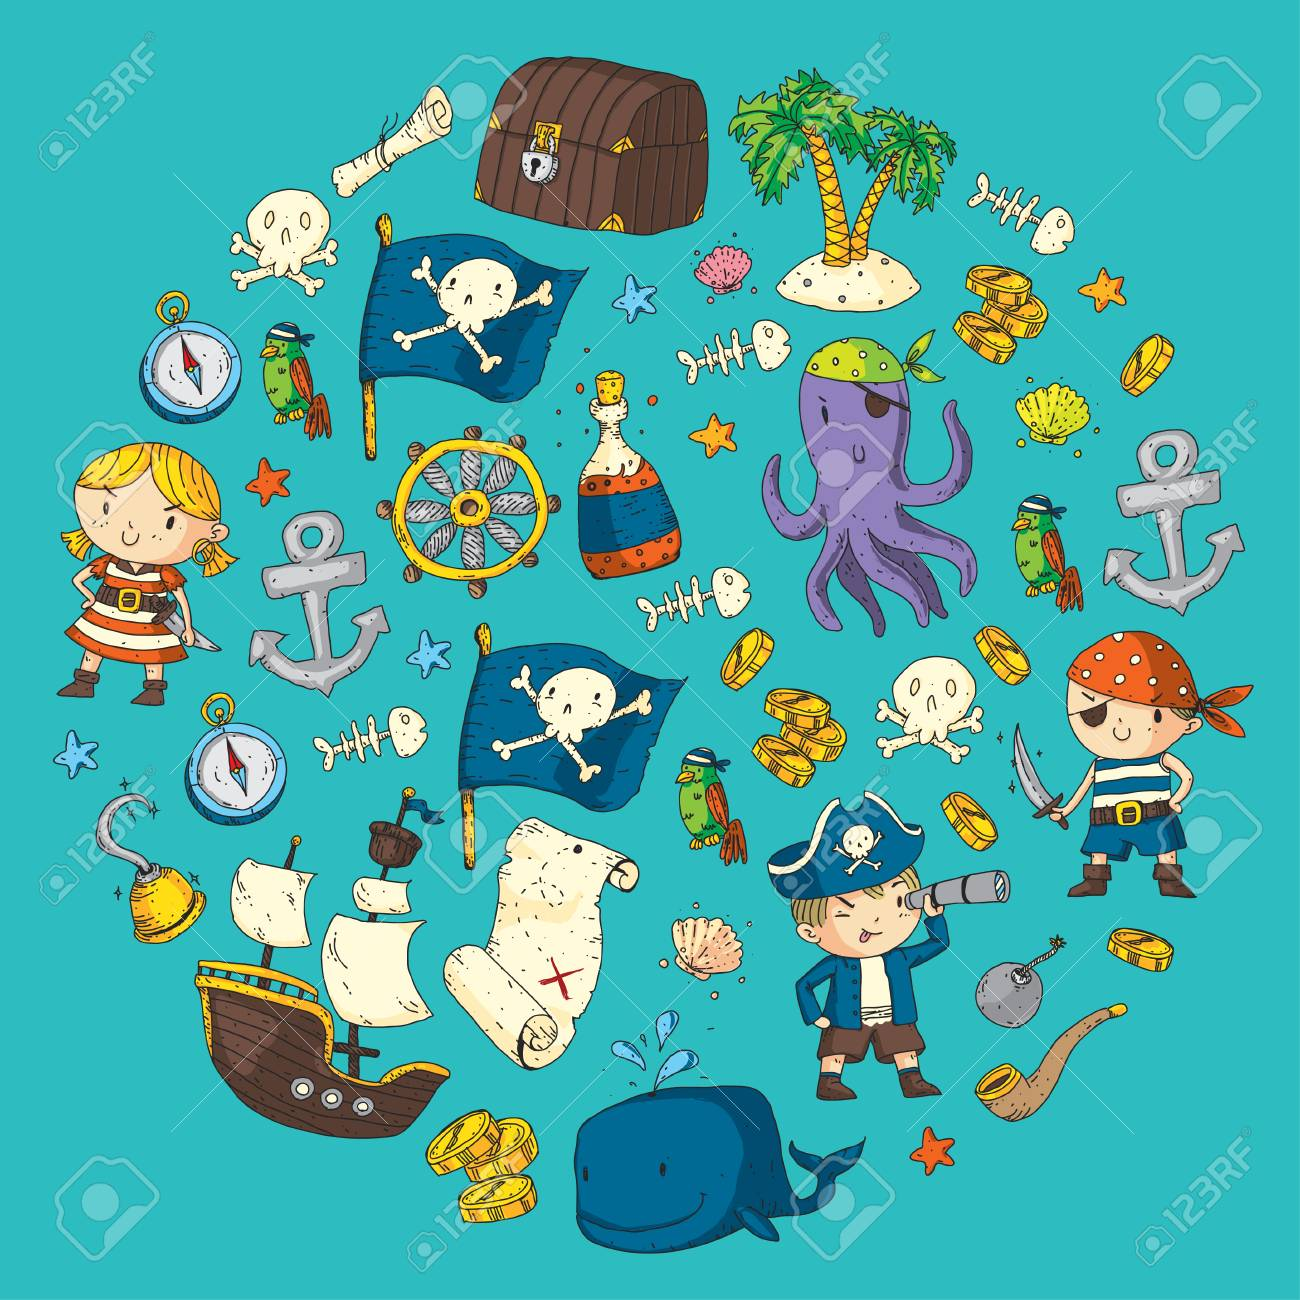 Pirate adventures Pirate party Kindergarten pirate party for children Adventure, treasure, pirates, octopus, whale, ship Kids drawing pattern - 91276215